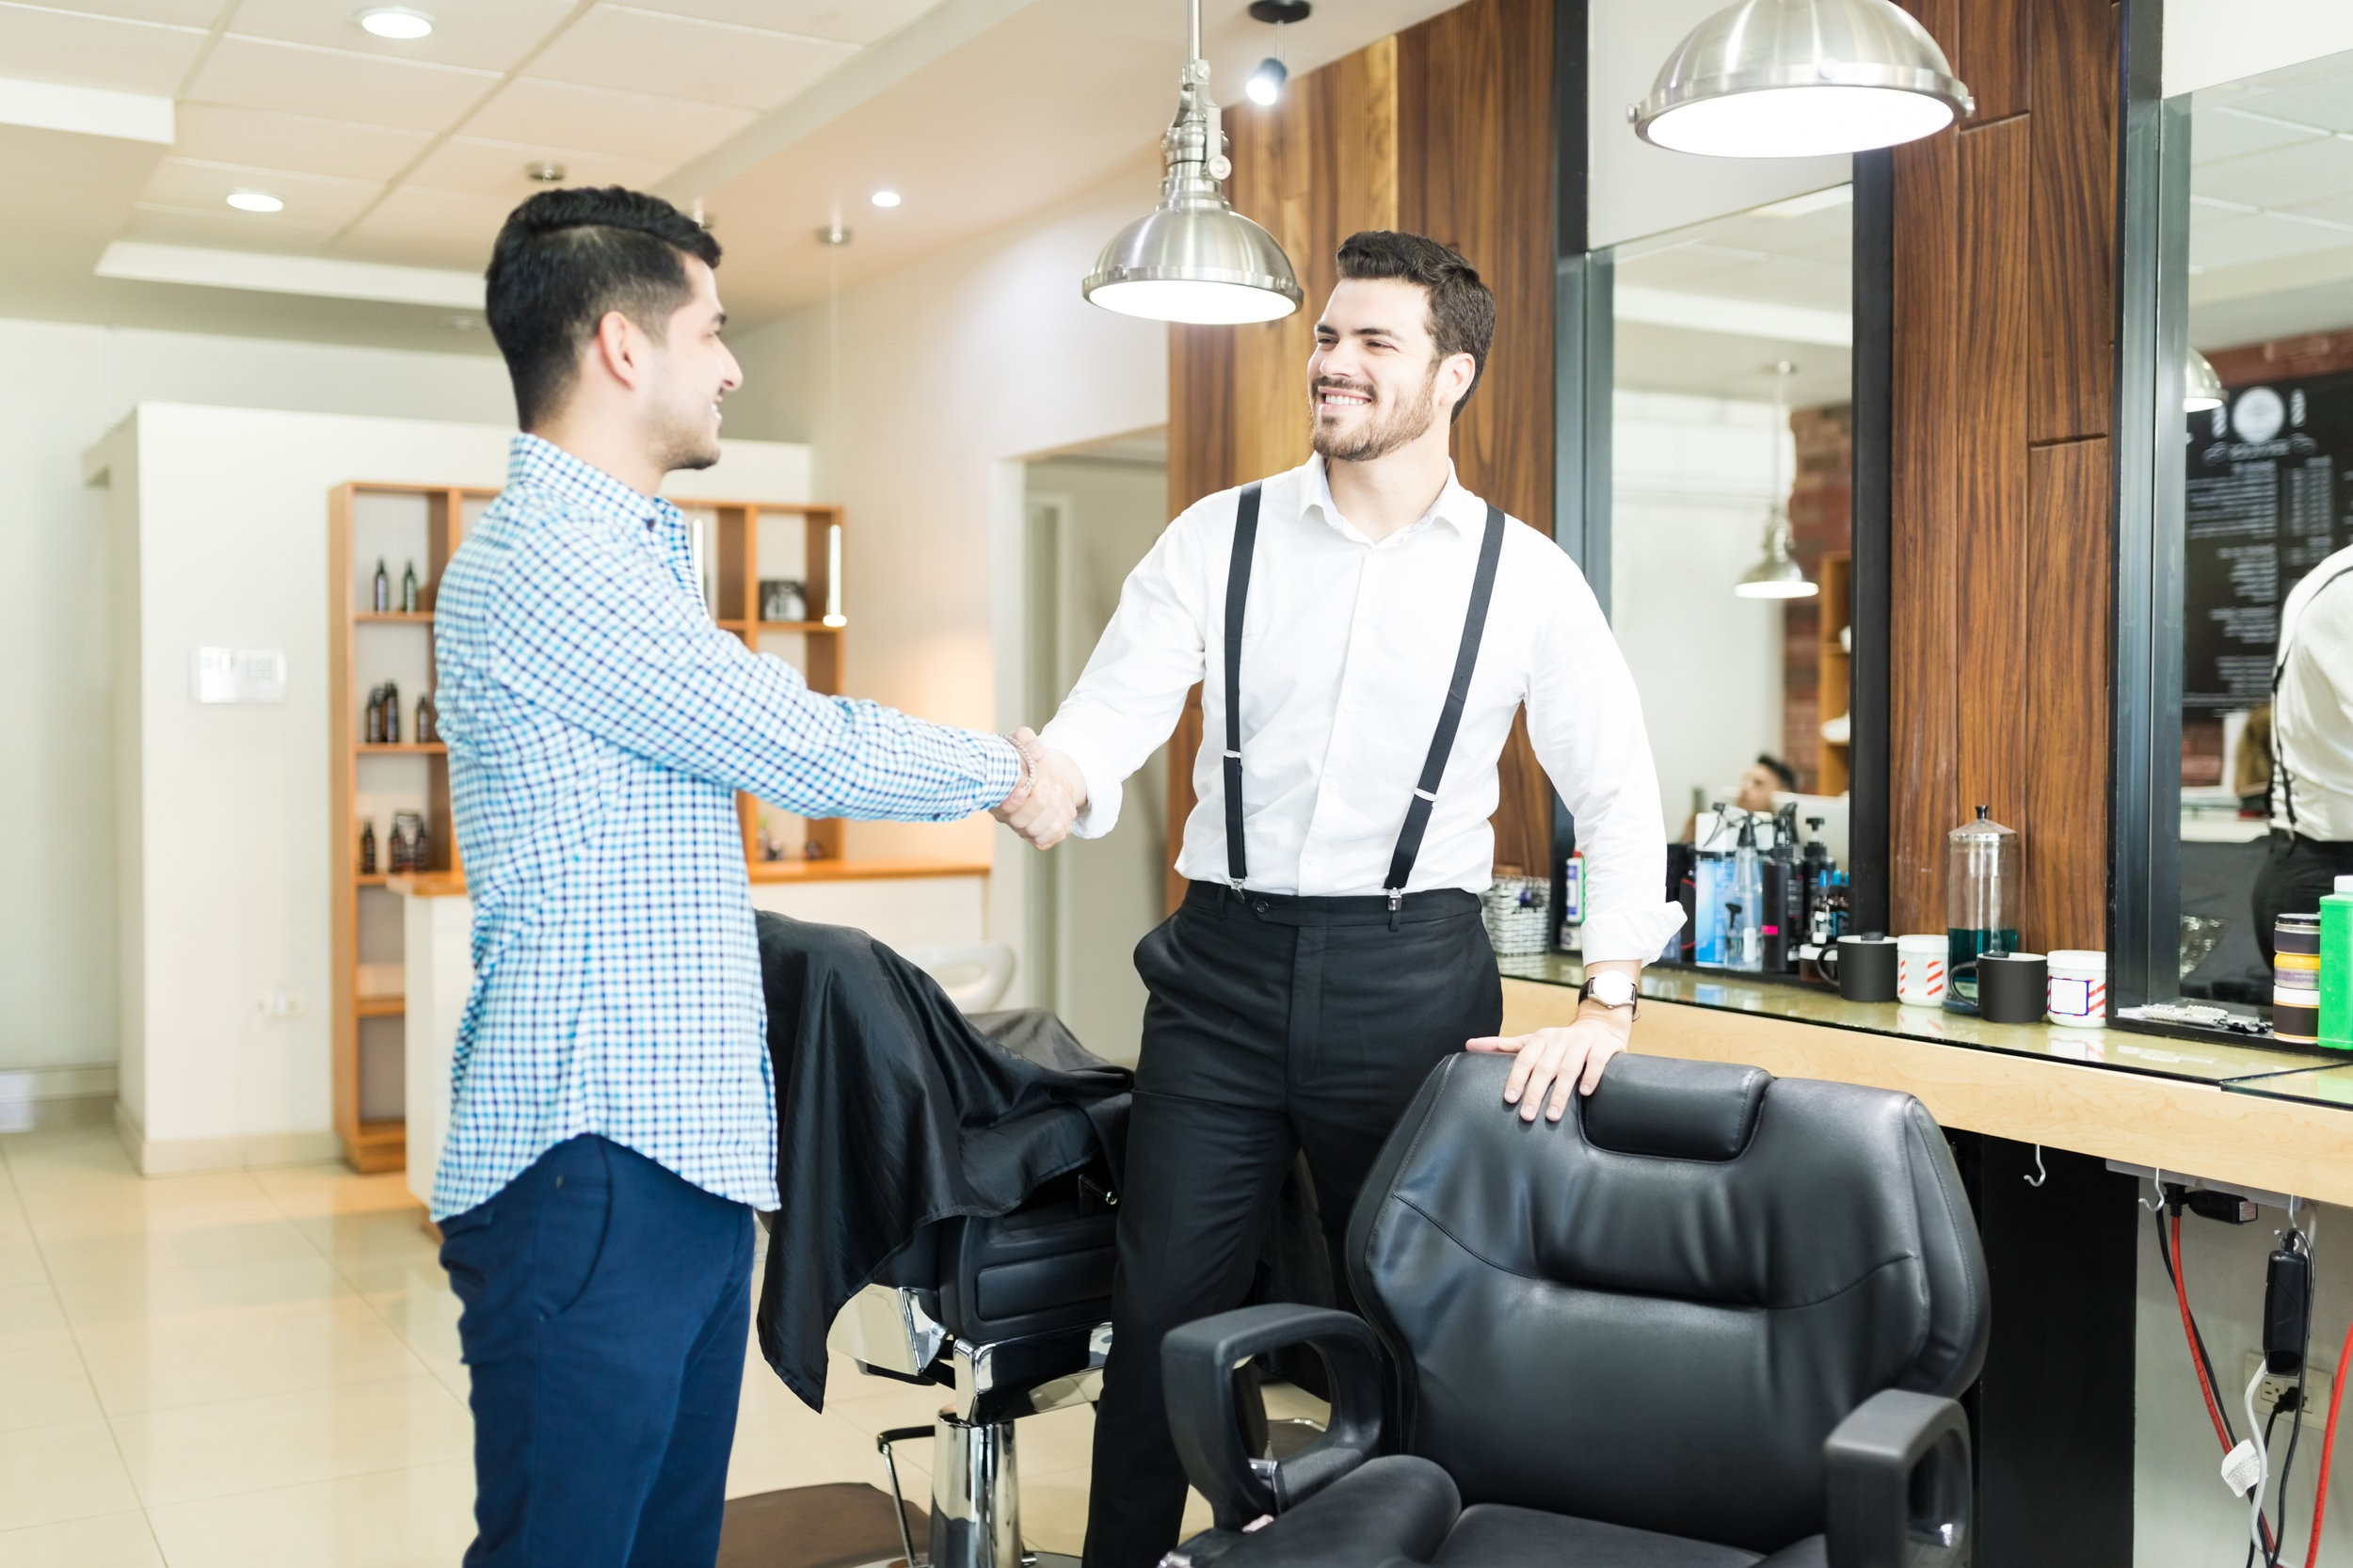 Find clients and keep them coming back - Easily browse stylist schedules and book an appointment that works for you